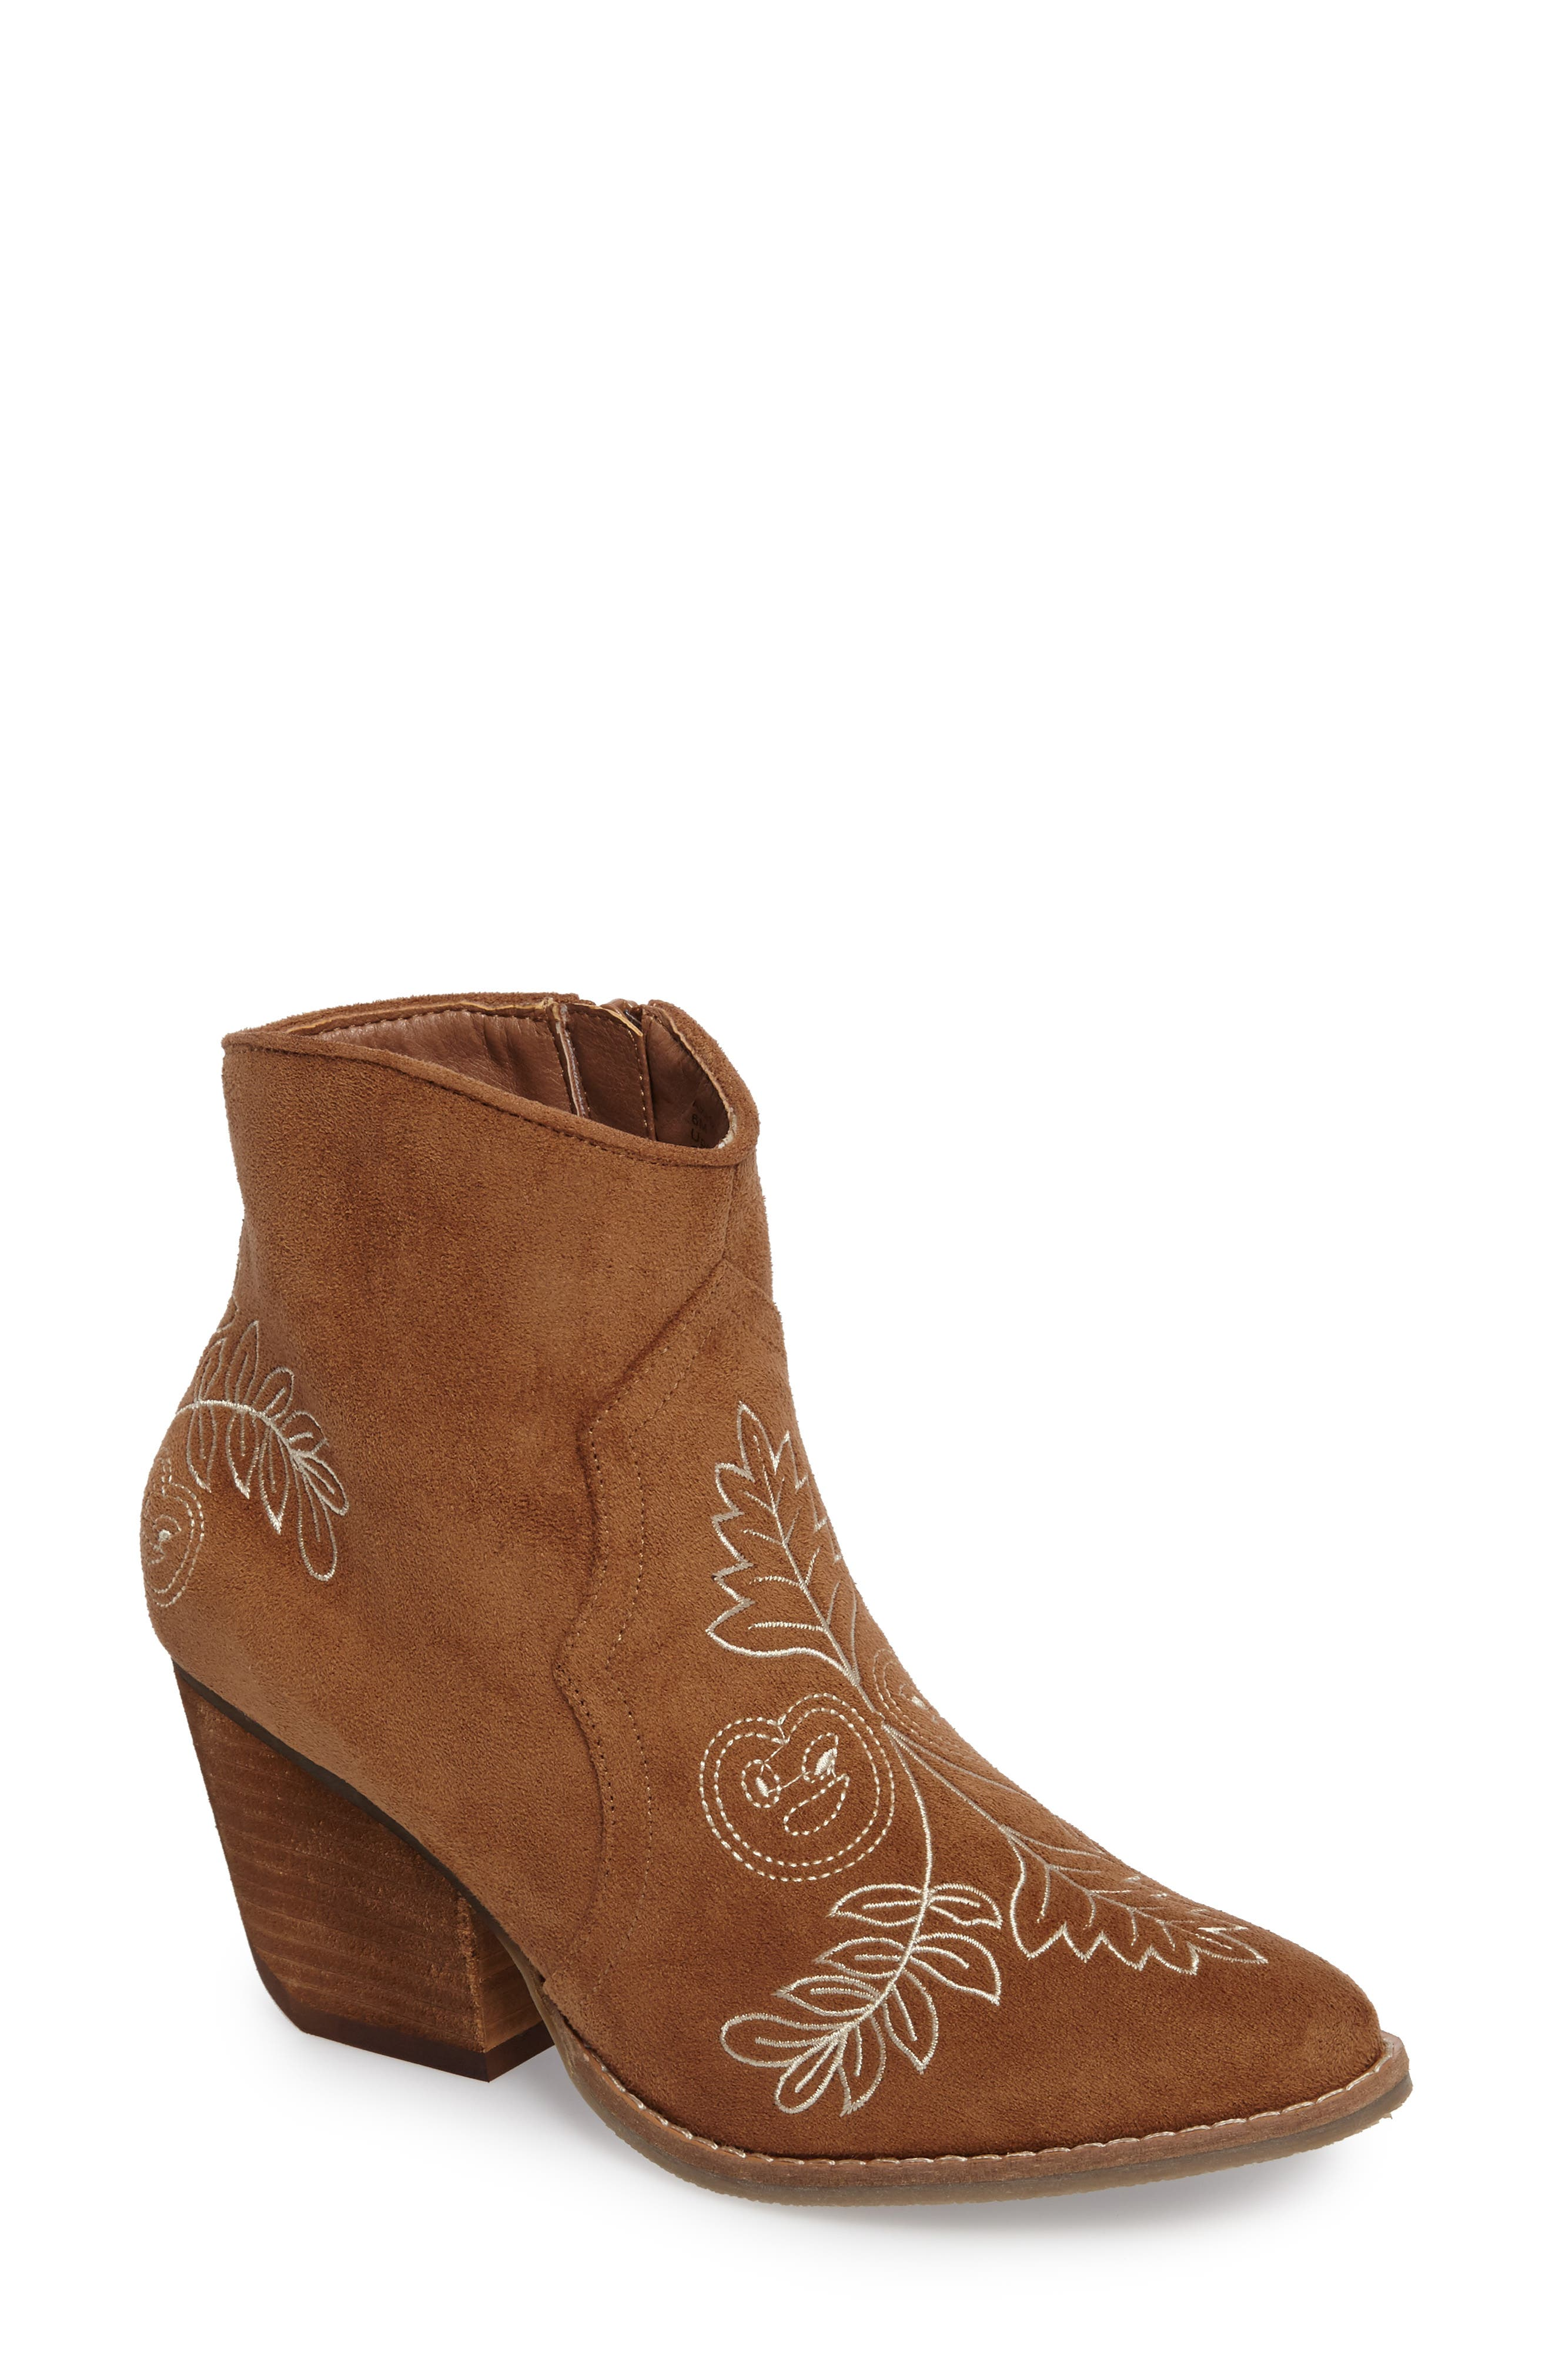 Alternate Image 1 Selected - Coconuts by Matisse Axis Embroidered Bootie (Women)